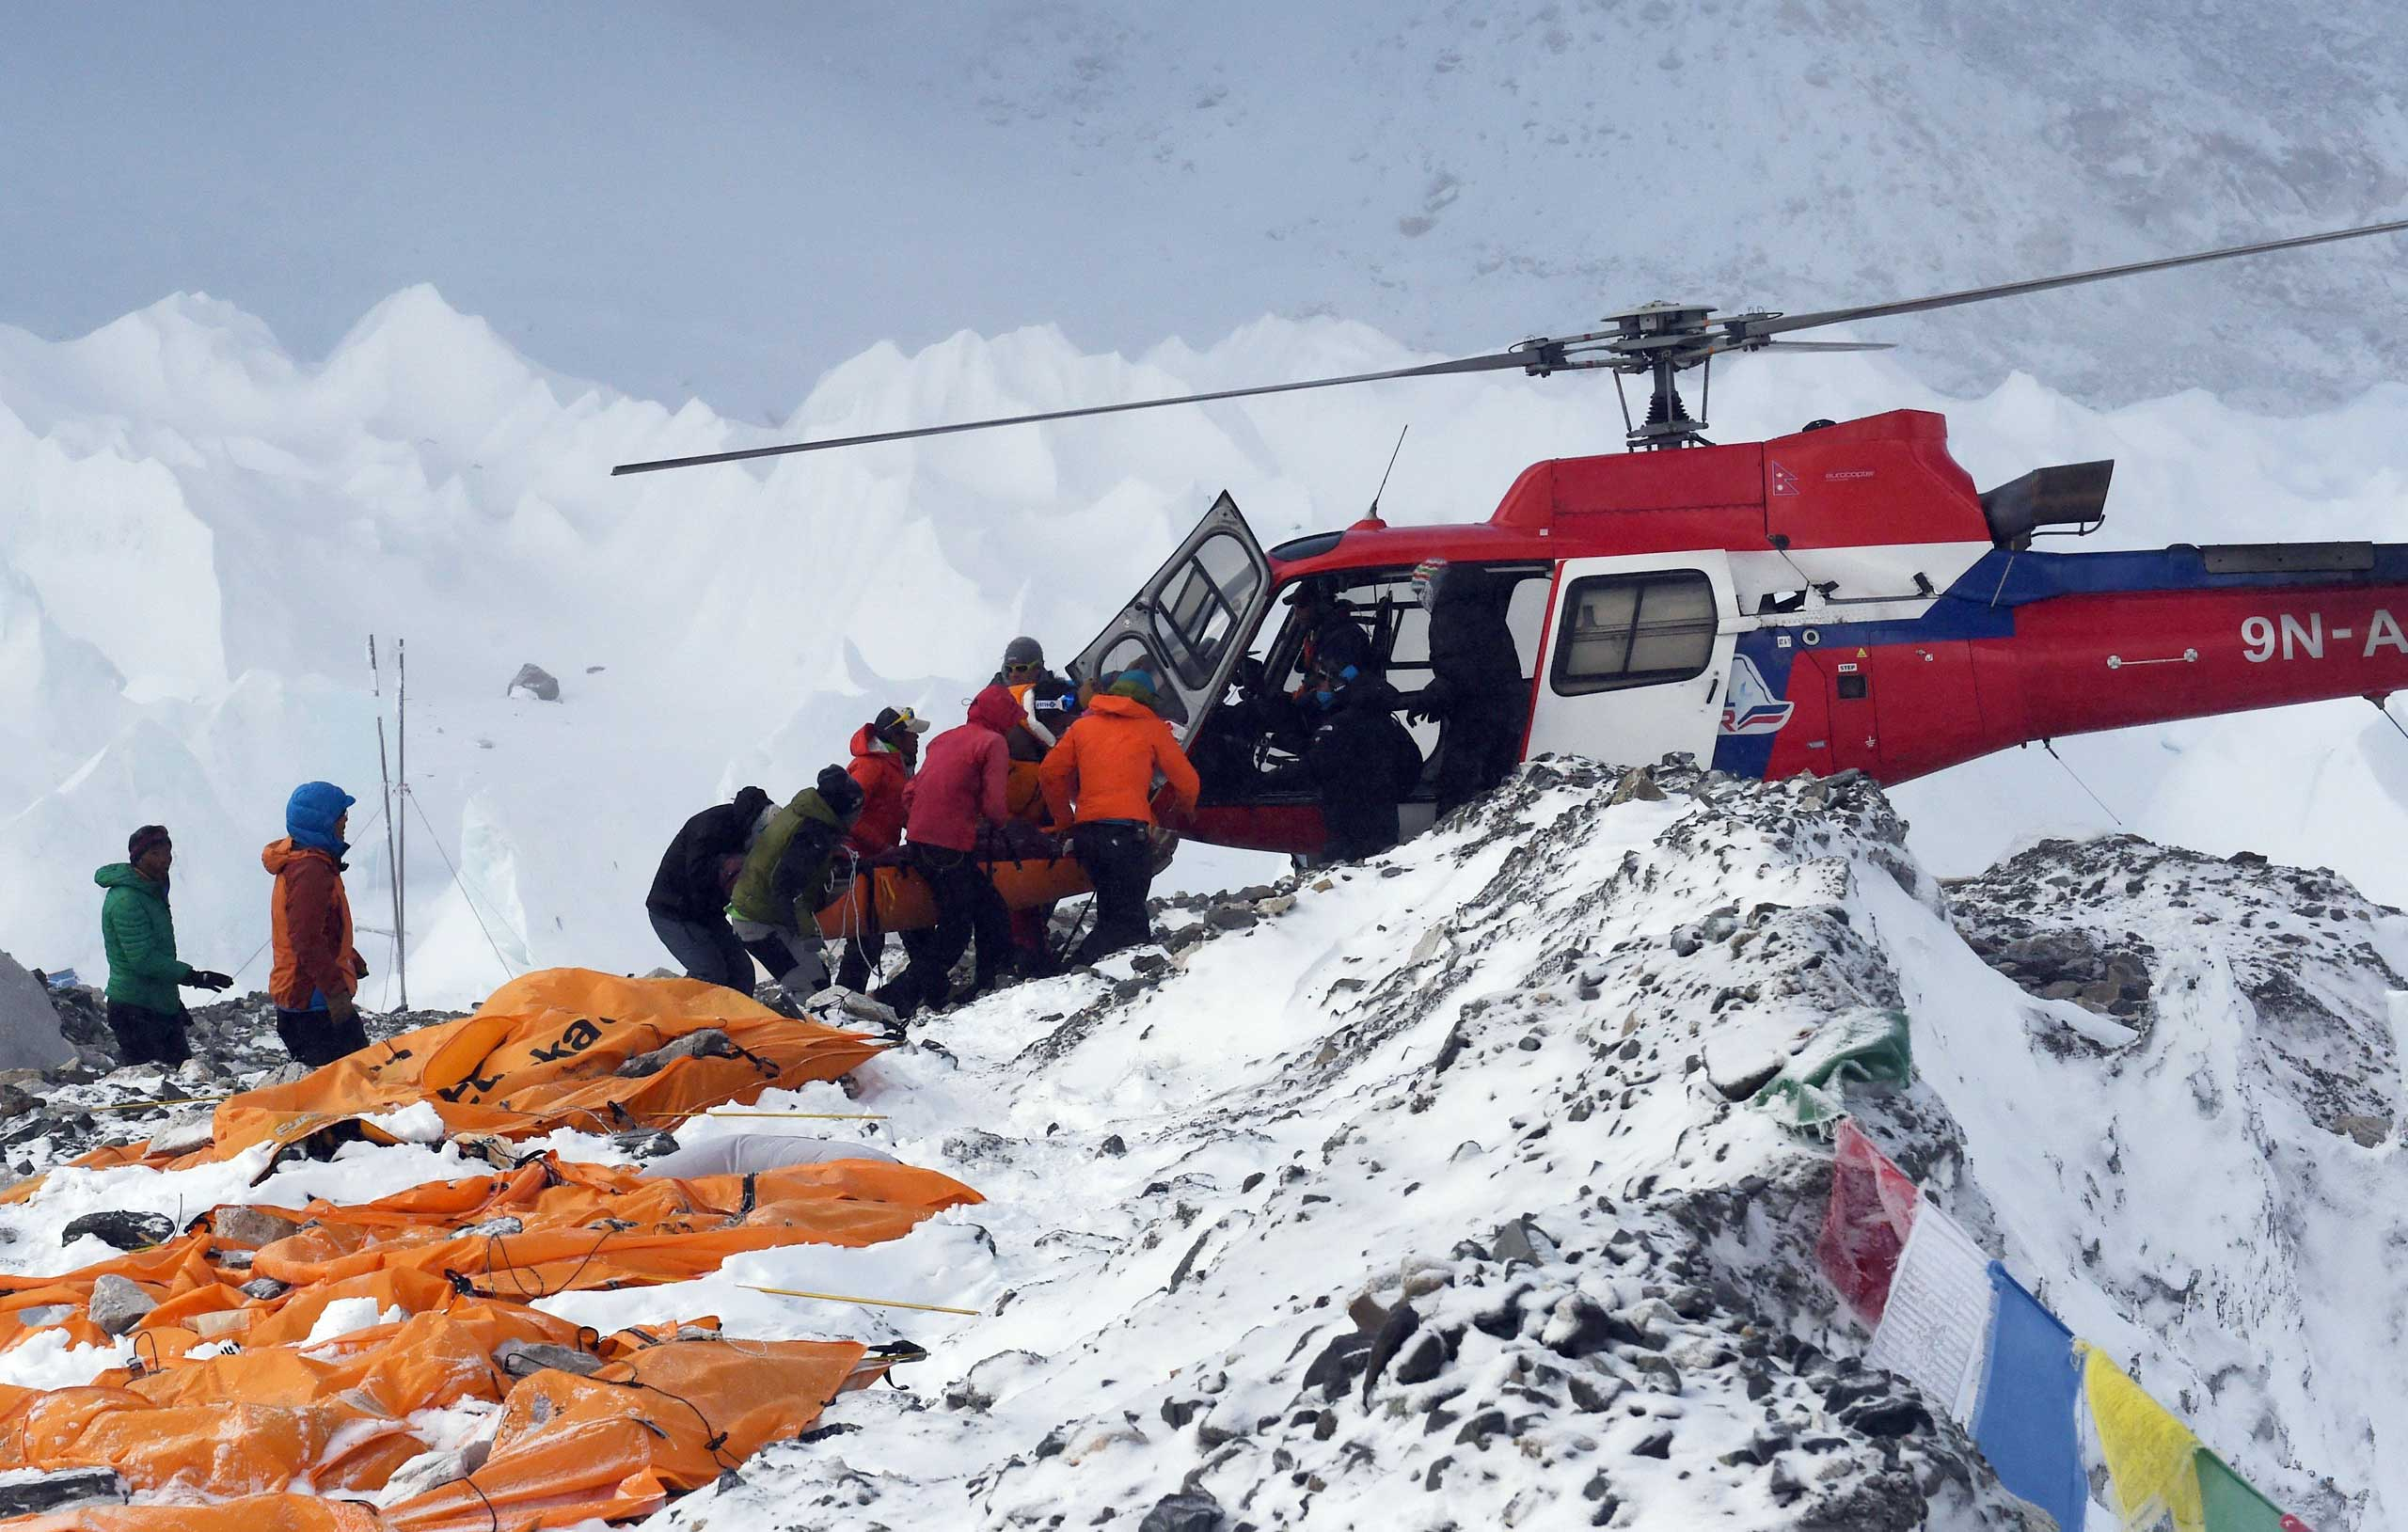 An injured person is loaded onto a rescue helicopter at Everest Base Camp on April 26, 2015.